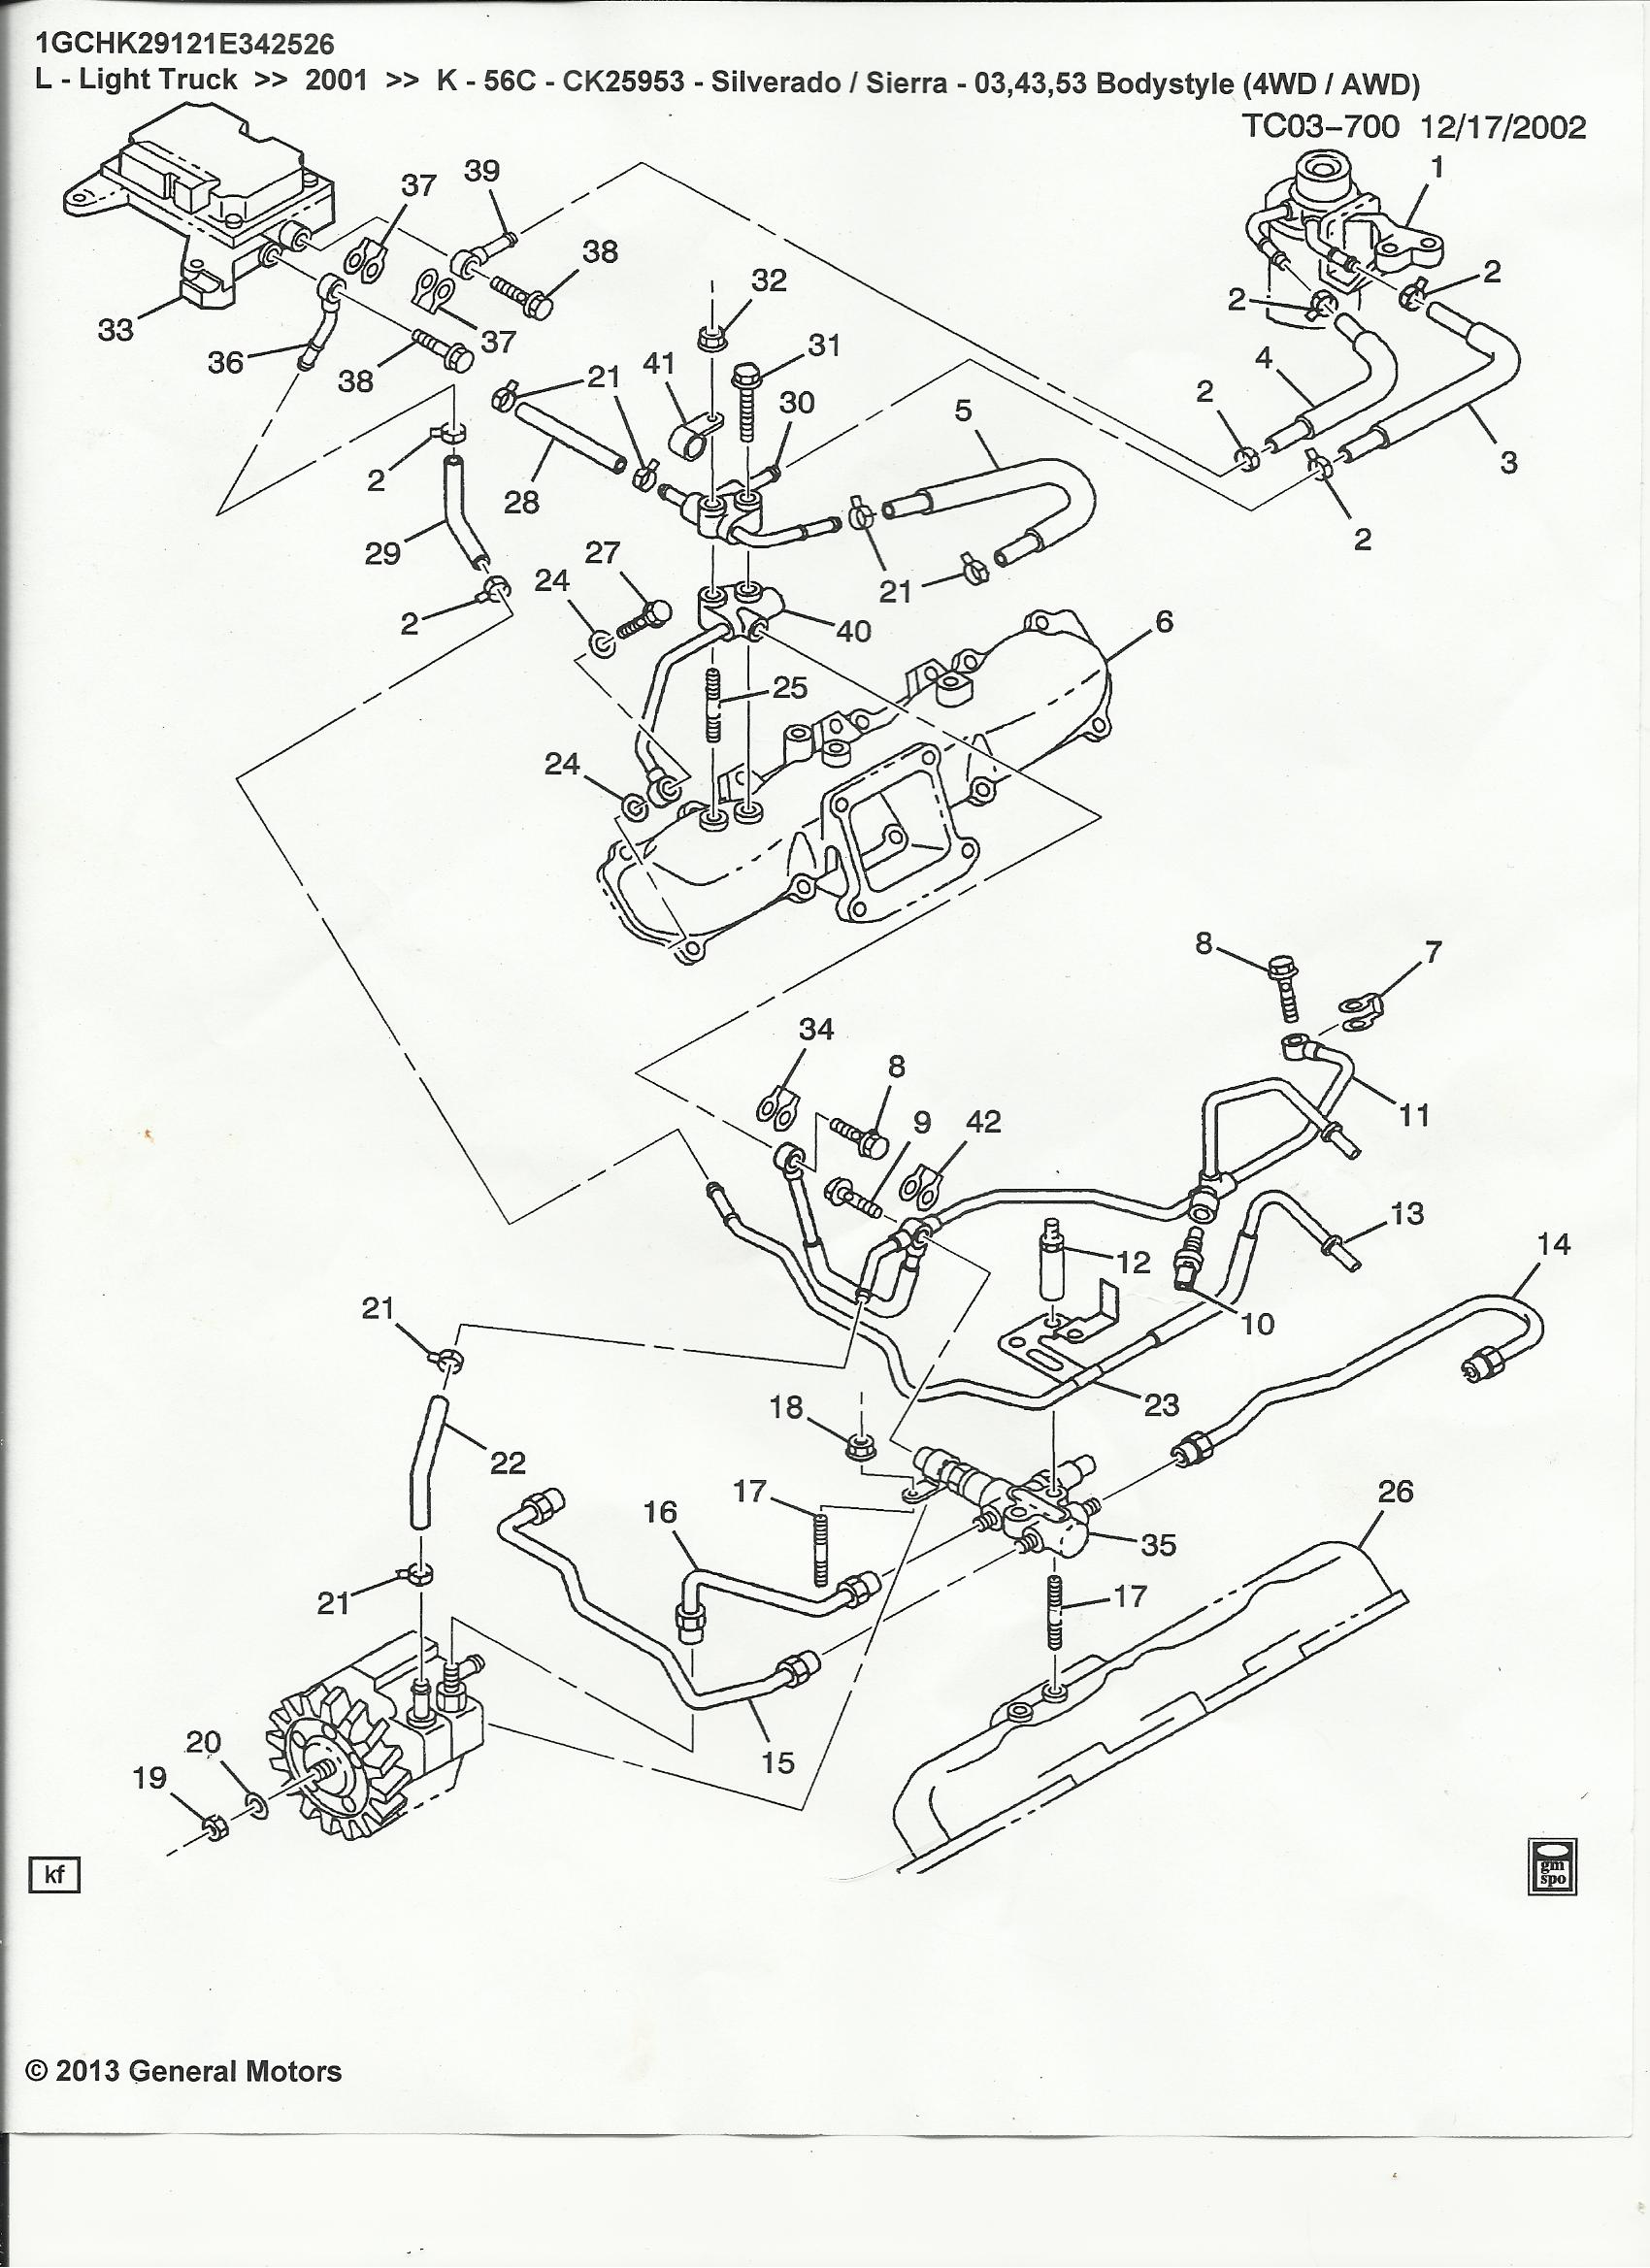 on a 1993 kawasaki zx750 wiring diagram